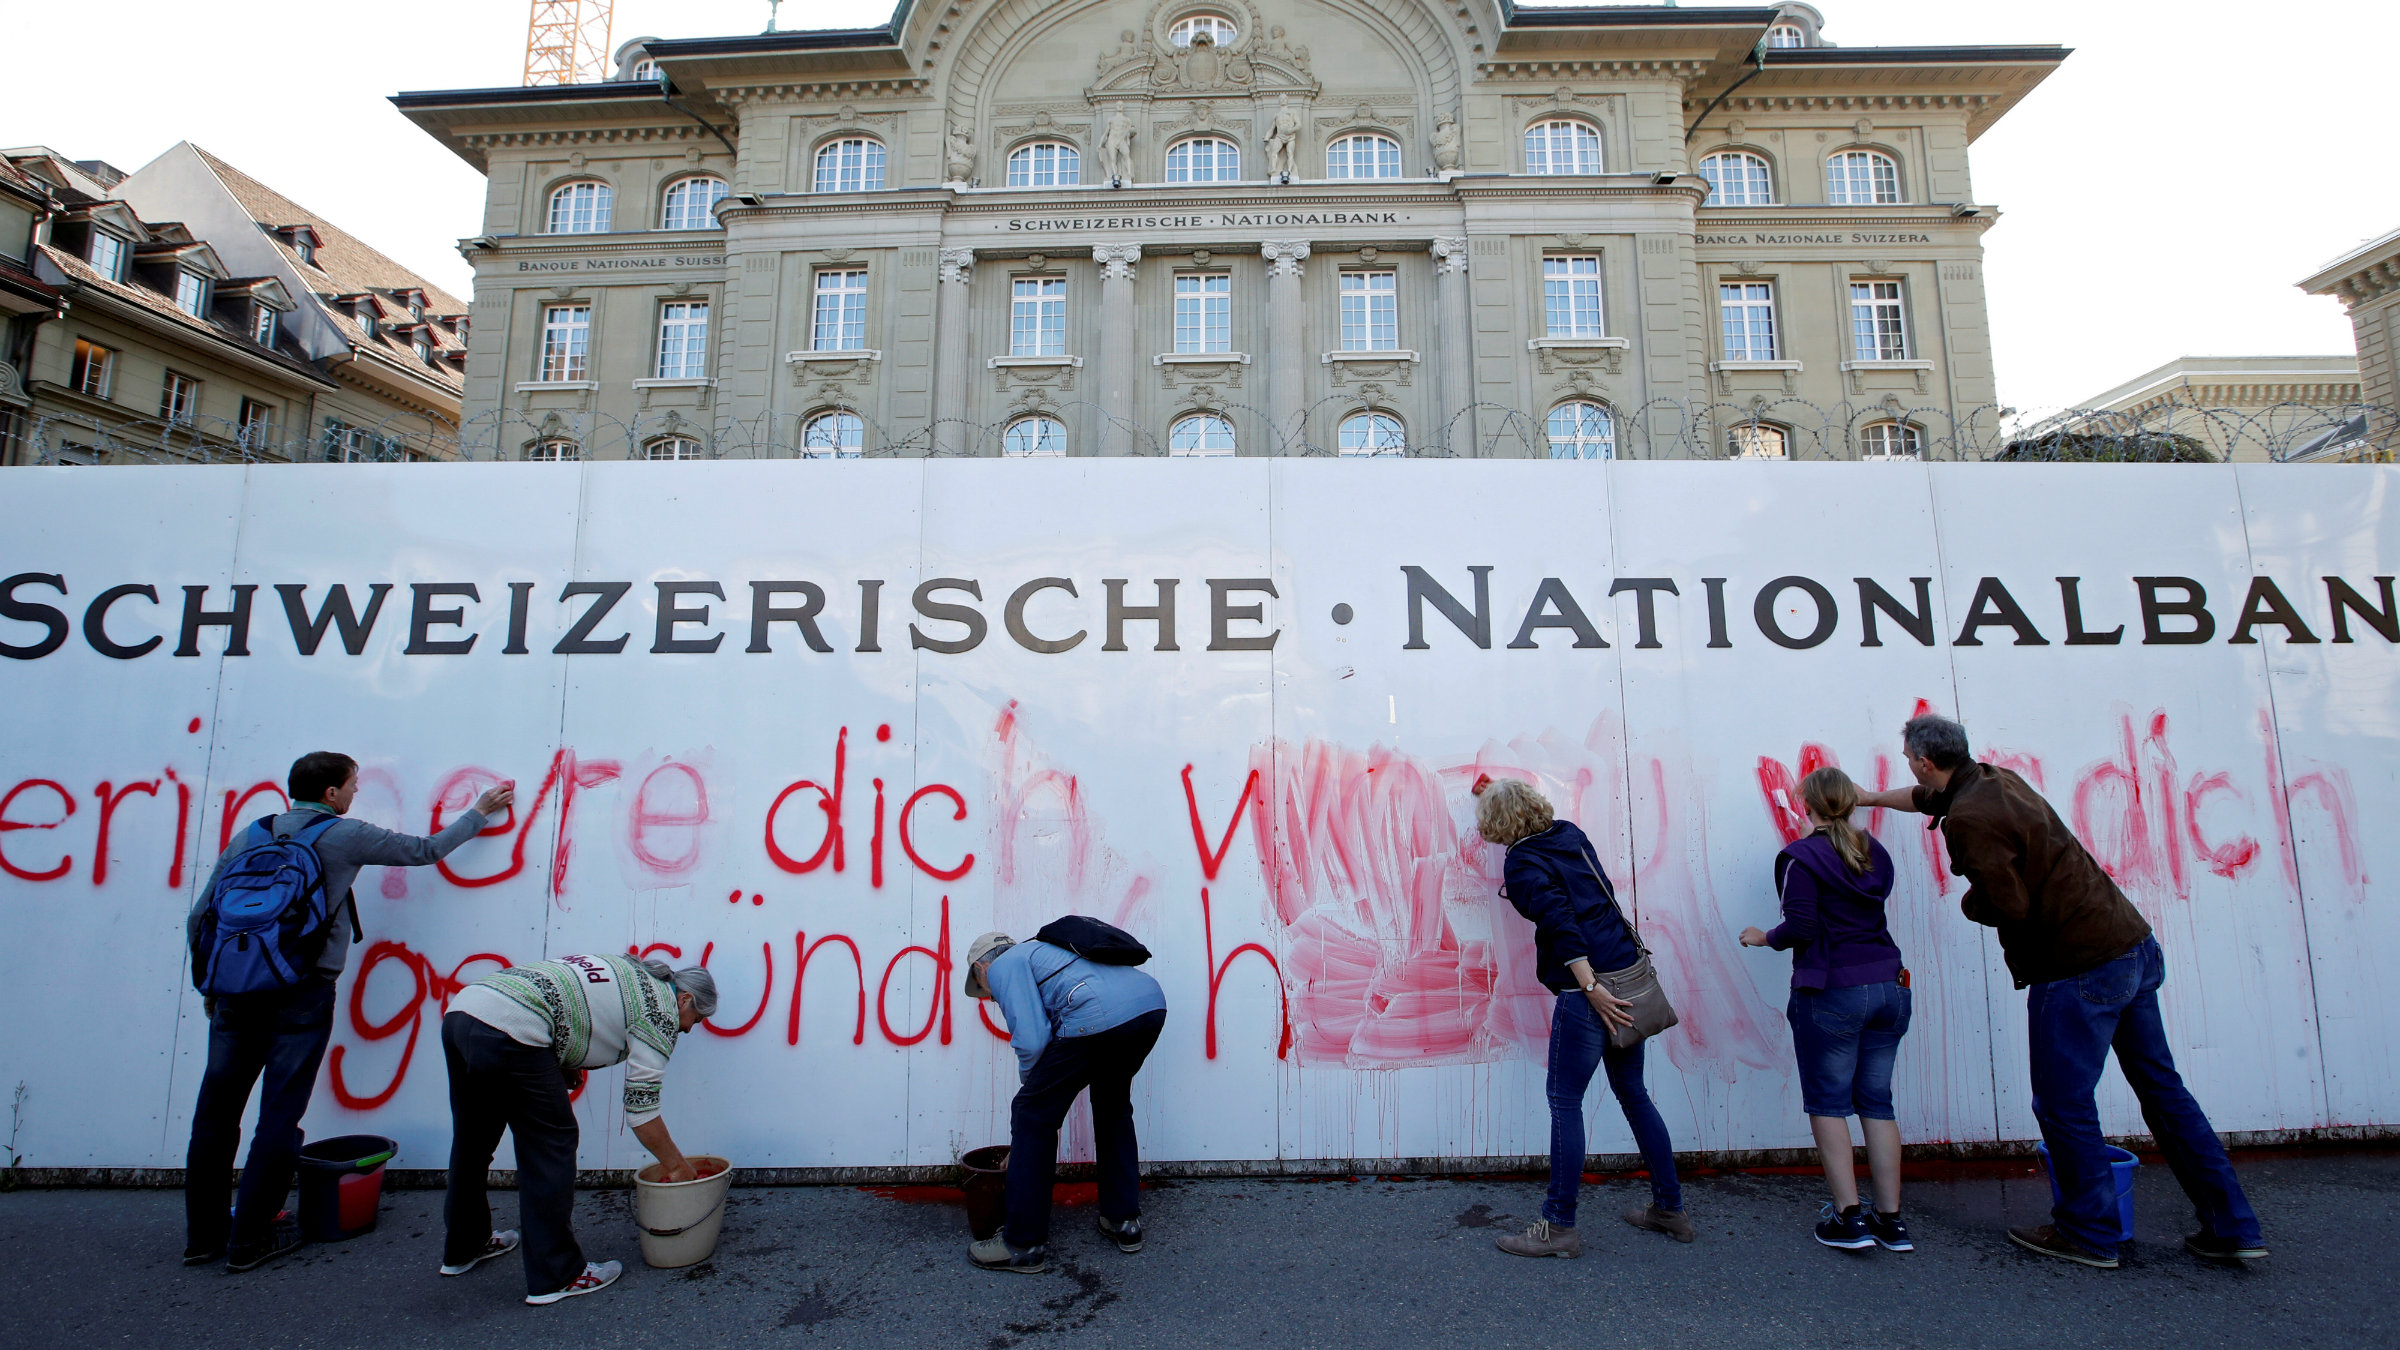 """Supporters of the """"sovereign money"""" initiative paint a slogan on a wall outside the Swiss National Bank"""